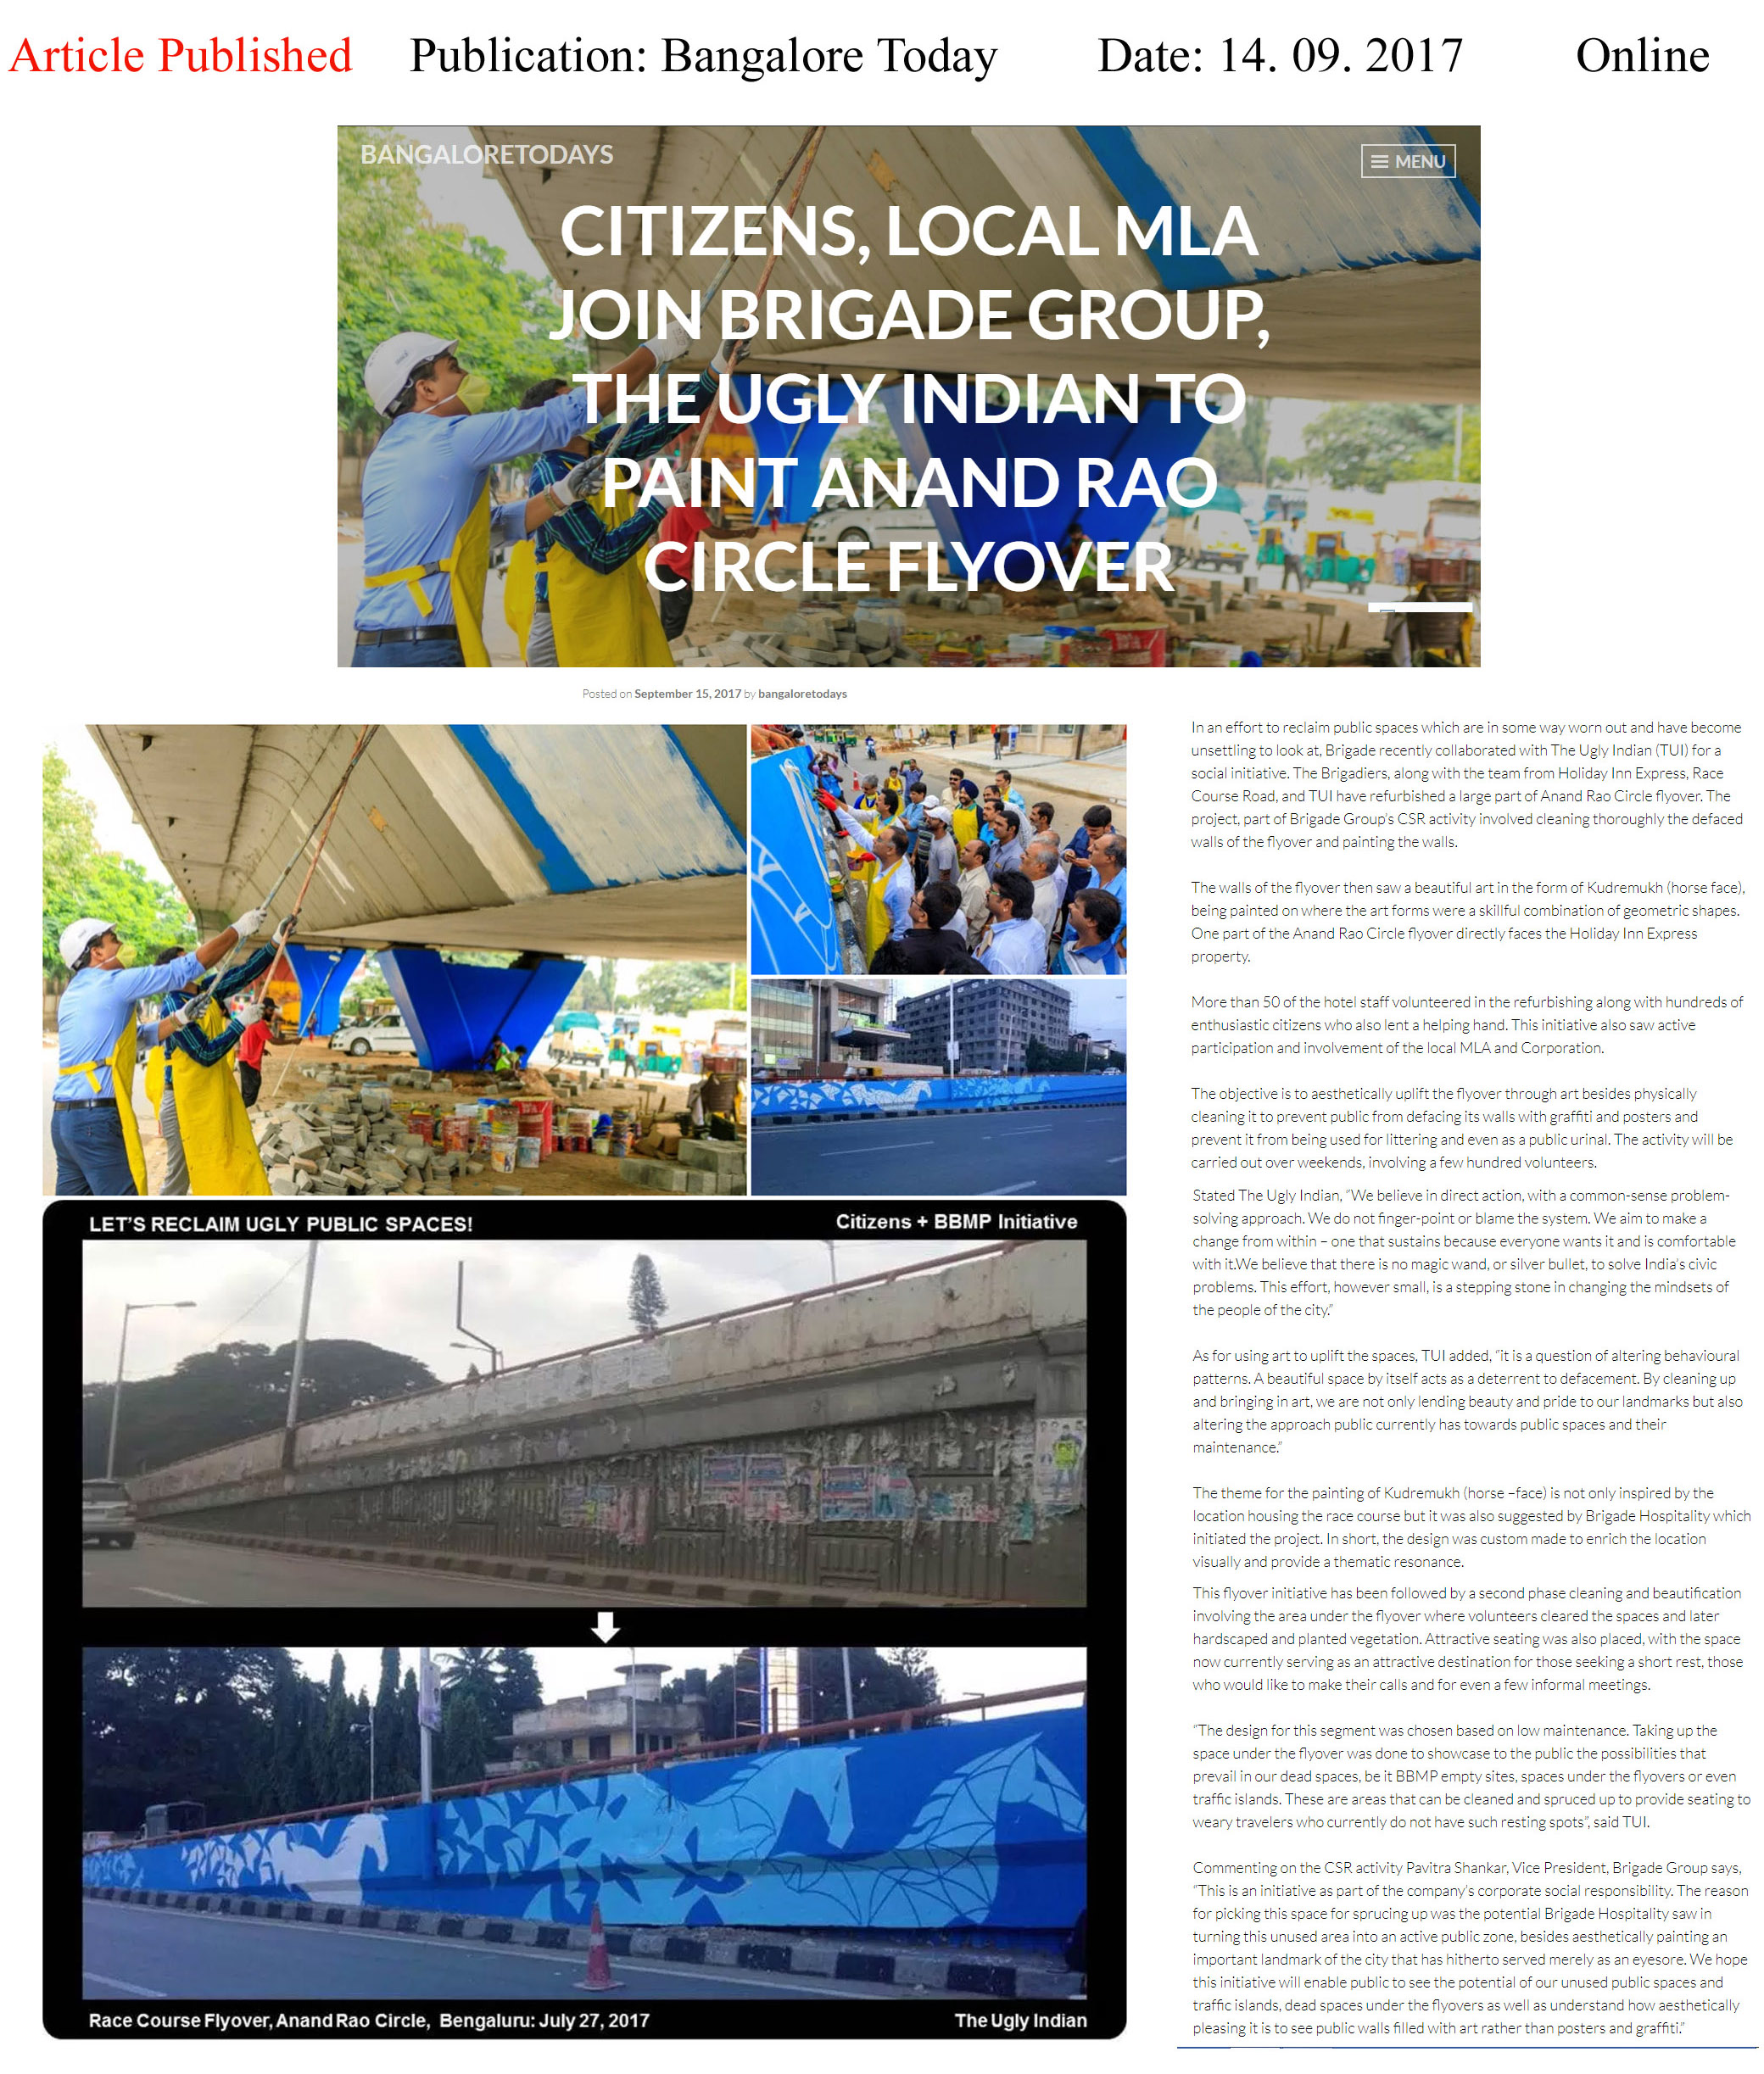 Hundreds of citizens join Brigade, The Ugly Indian to paint Anand Rao Circle flyover—Bangalore Todays–Online